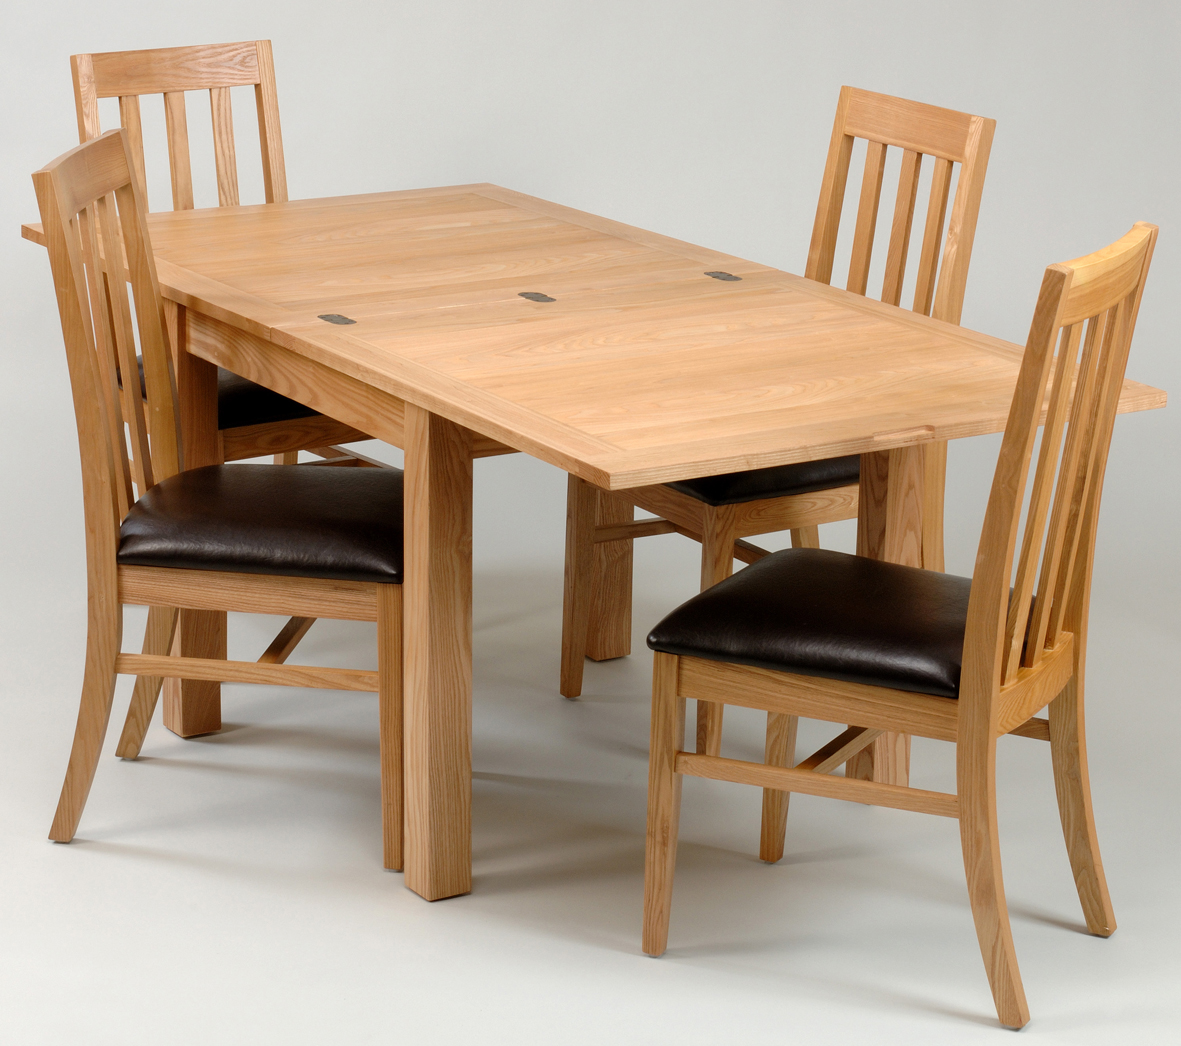 wooden expandable dining table set with leather seat for dining room furniture ideas